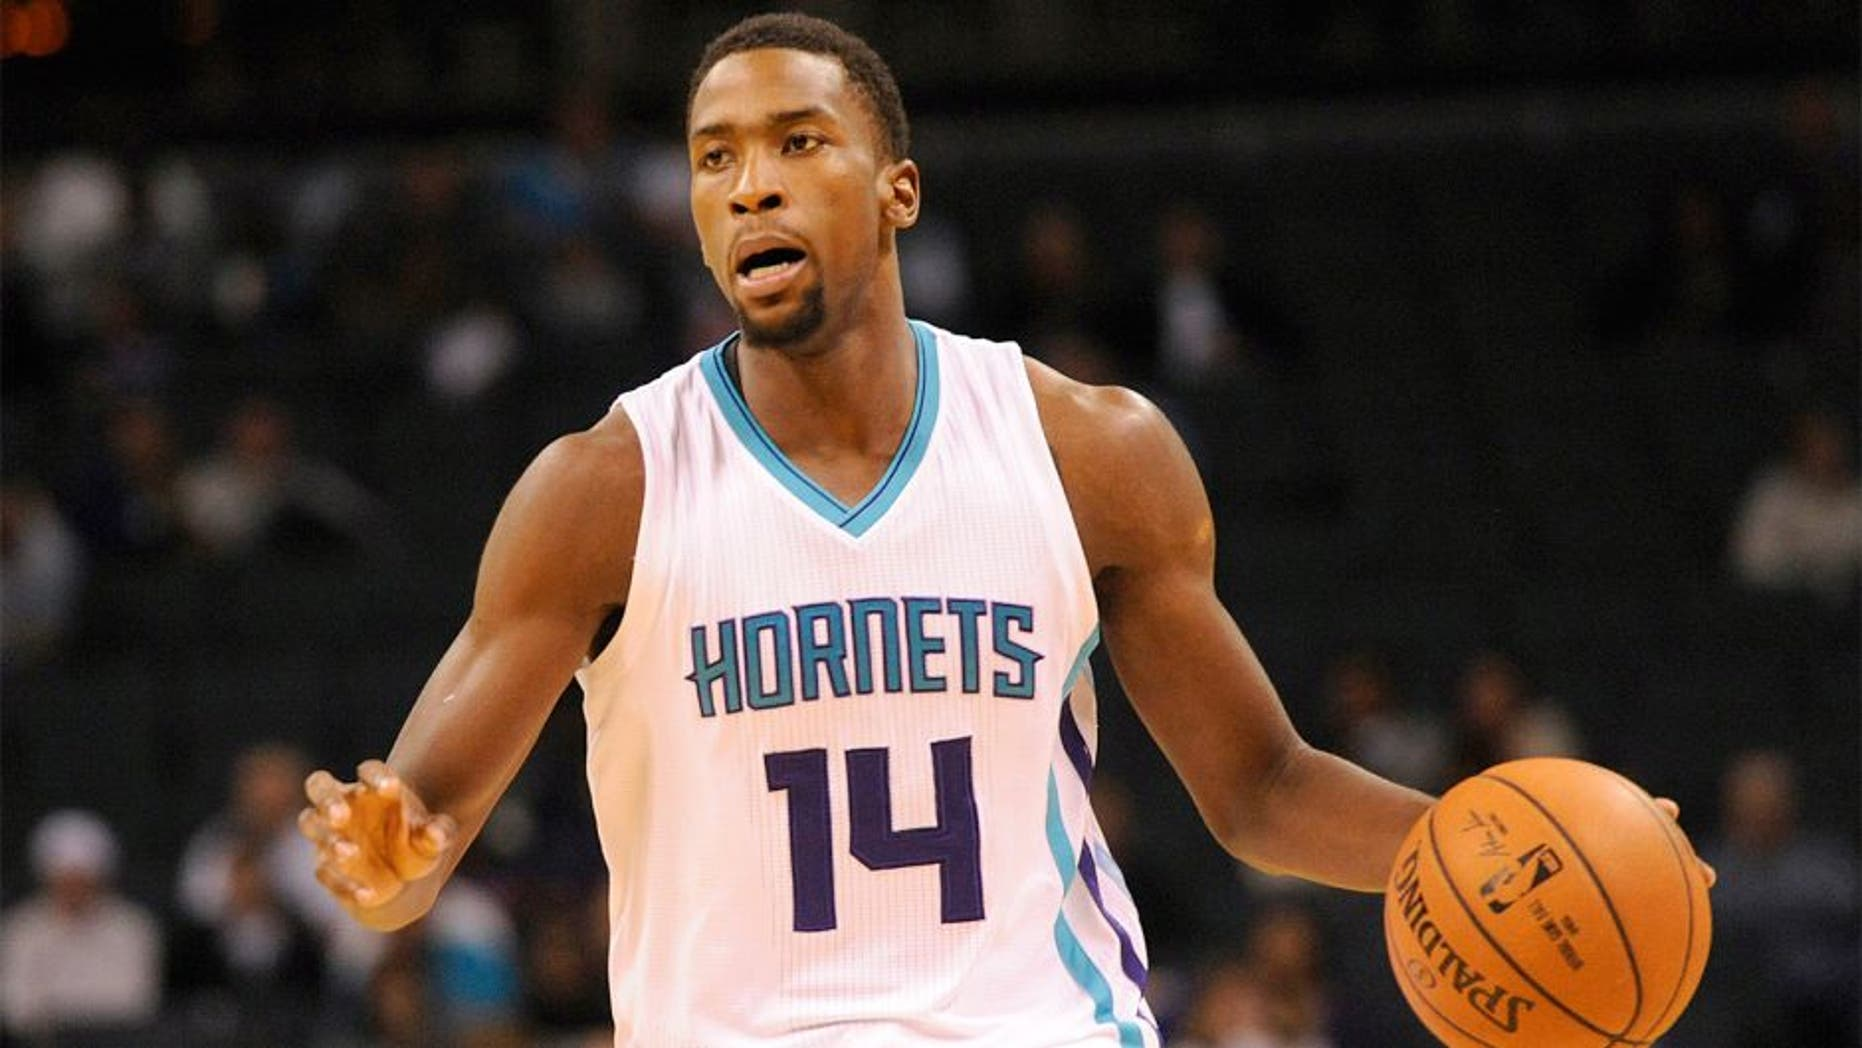 Oct 23, 2014; Charlotte, NC, USA; Charlotte Hornets forward Michael Kidd-Gilchrist (14) during the first half of the game against the Indiana Pacers at Time Warner Cable Arena. Mandatory Credit: Sam Sharpe-USA TODAY Sports